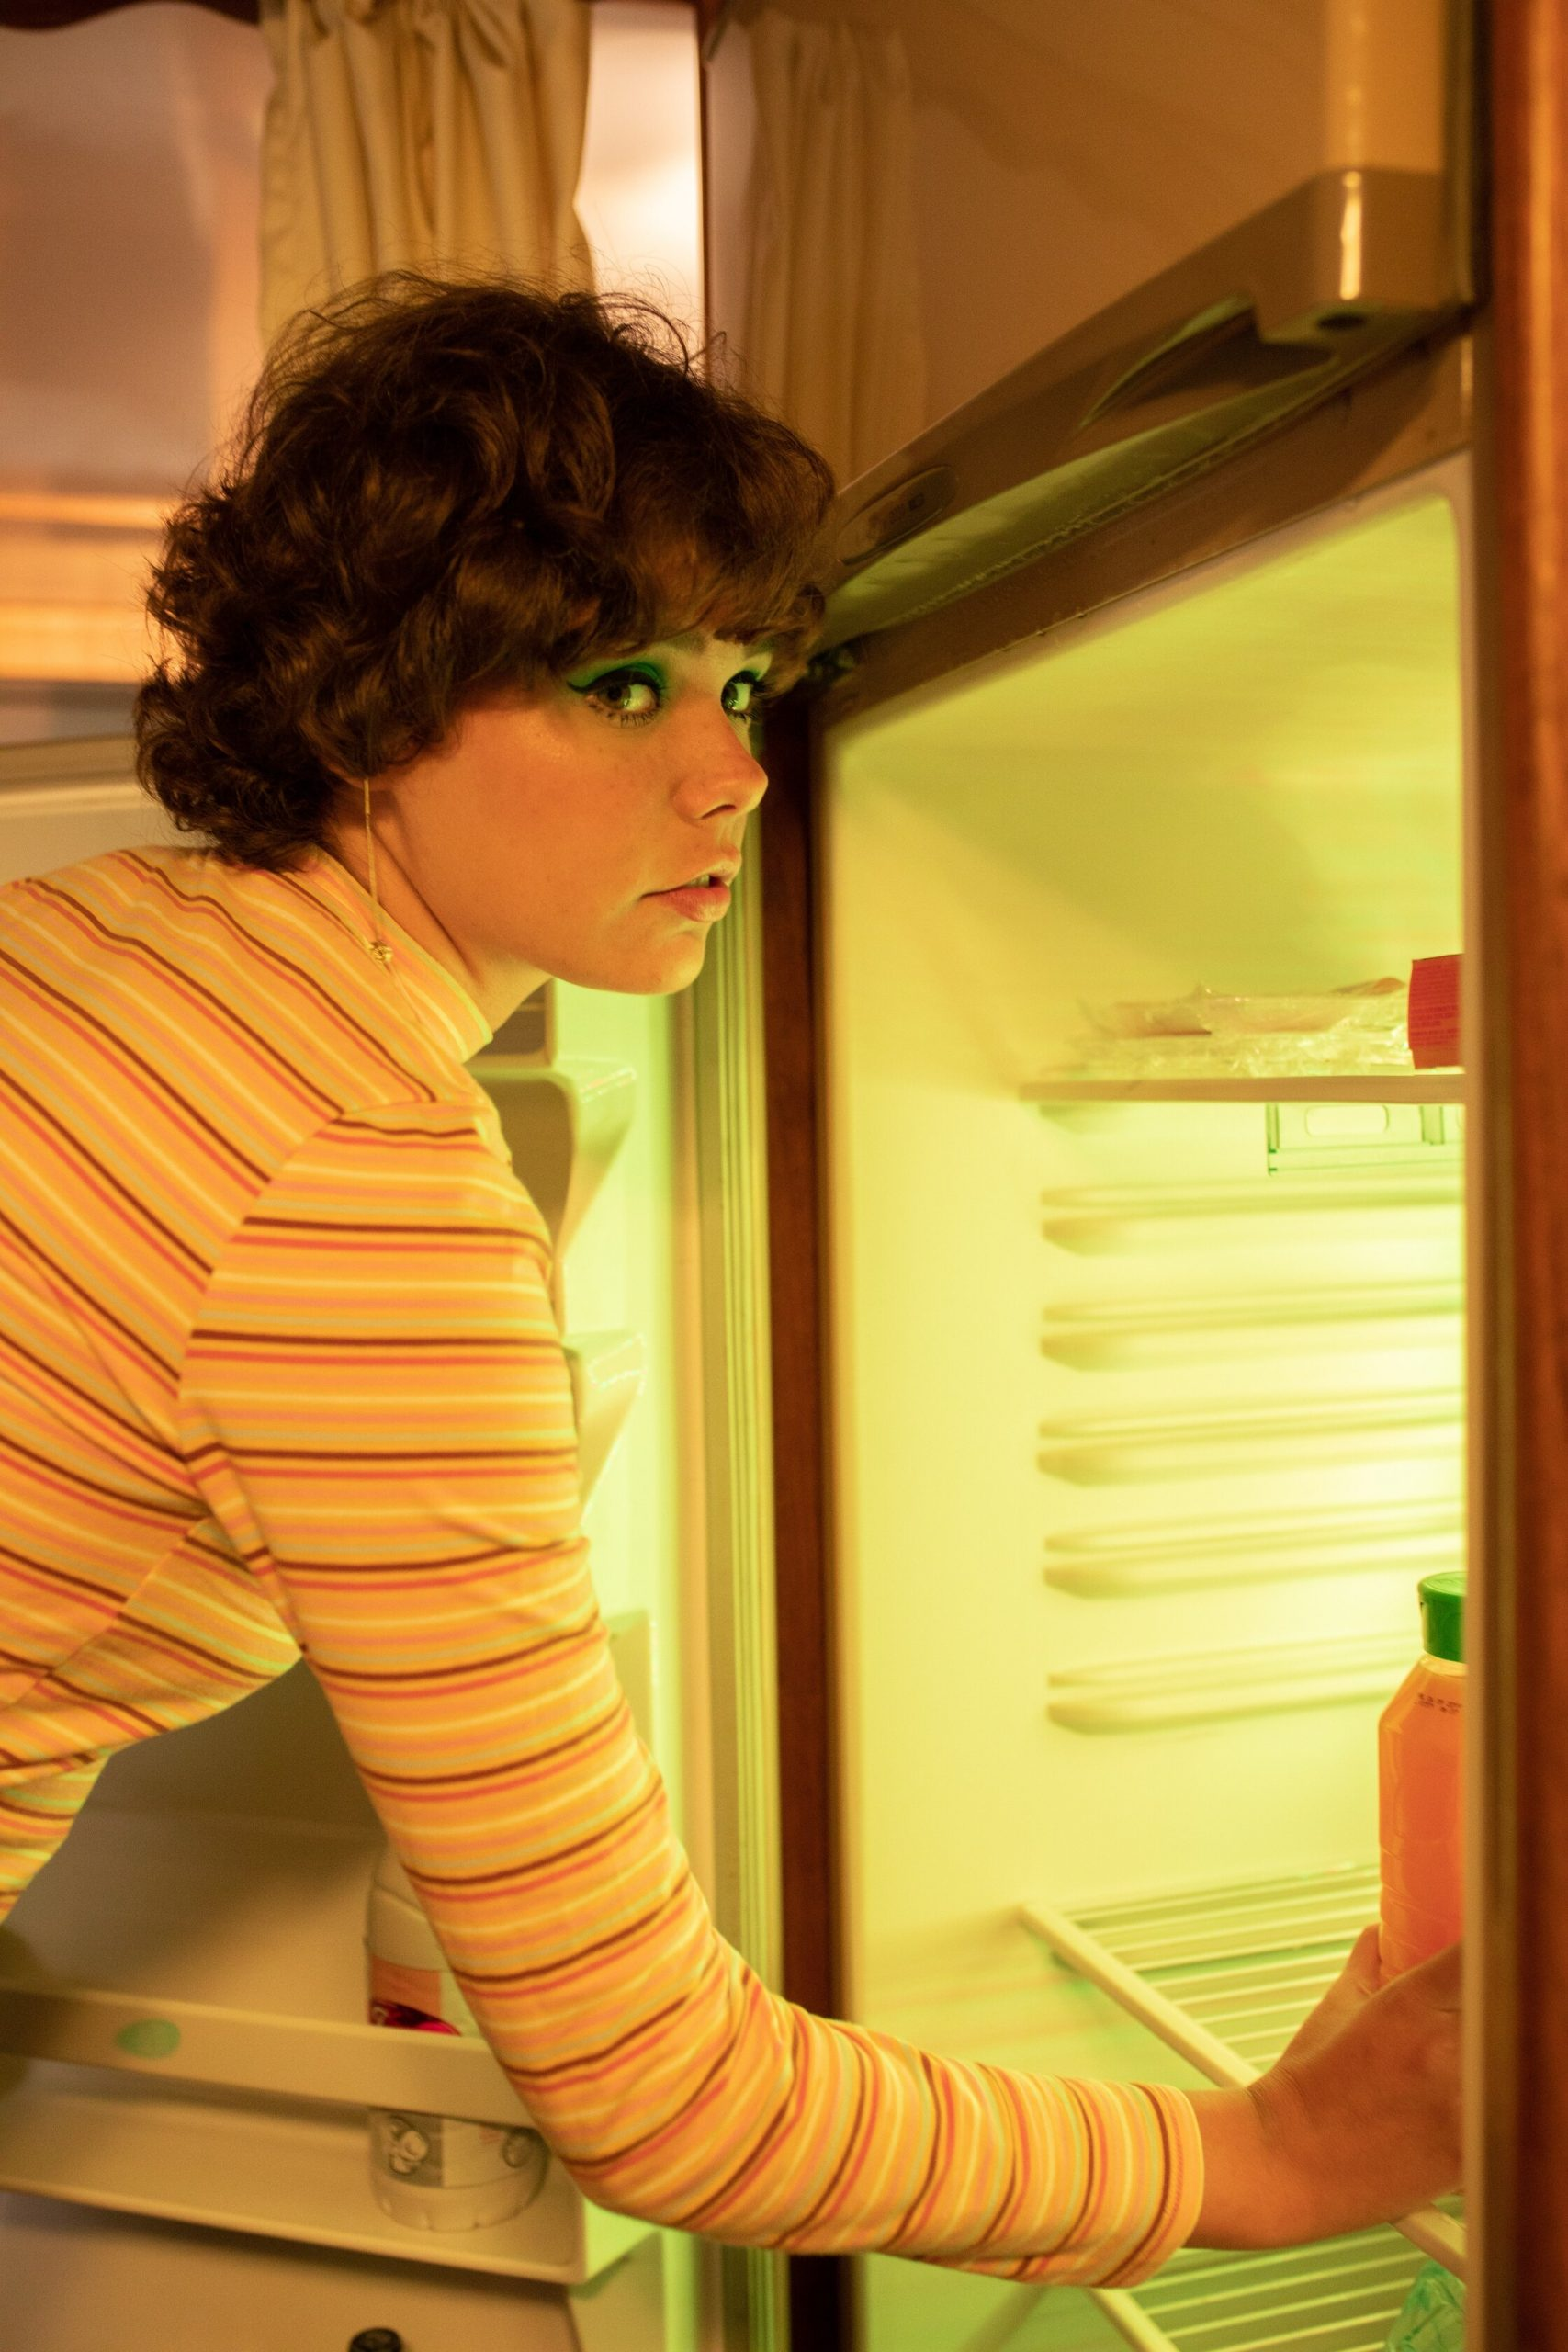 Refrigerator Safety Awareness: How to Avoid Fridge Injuries